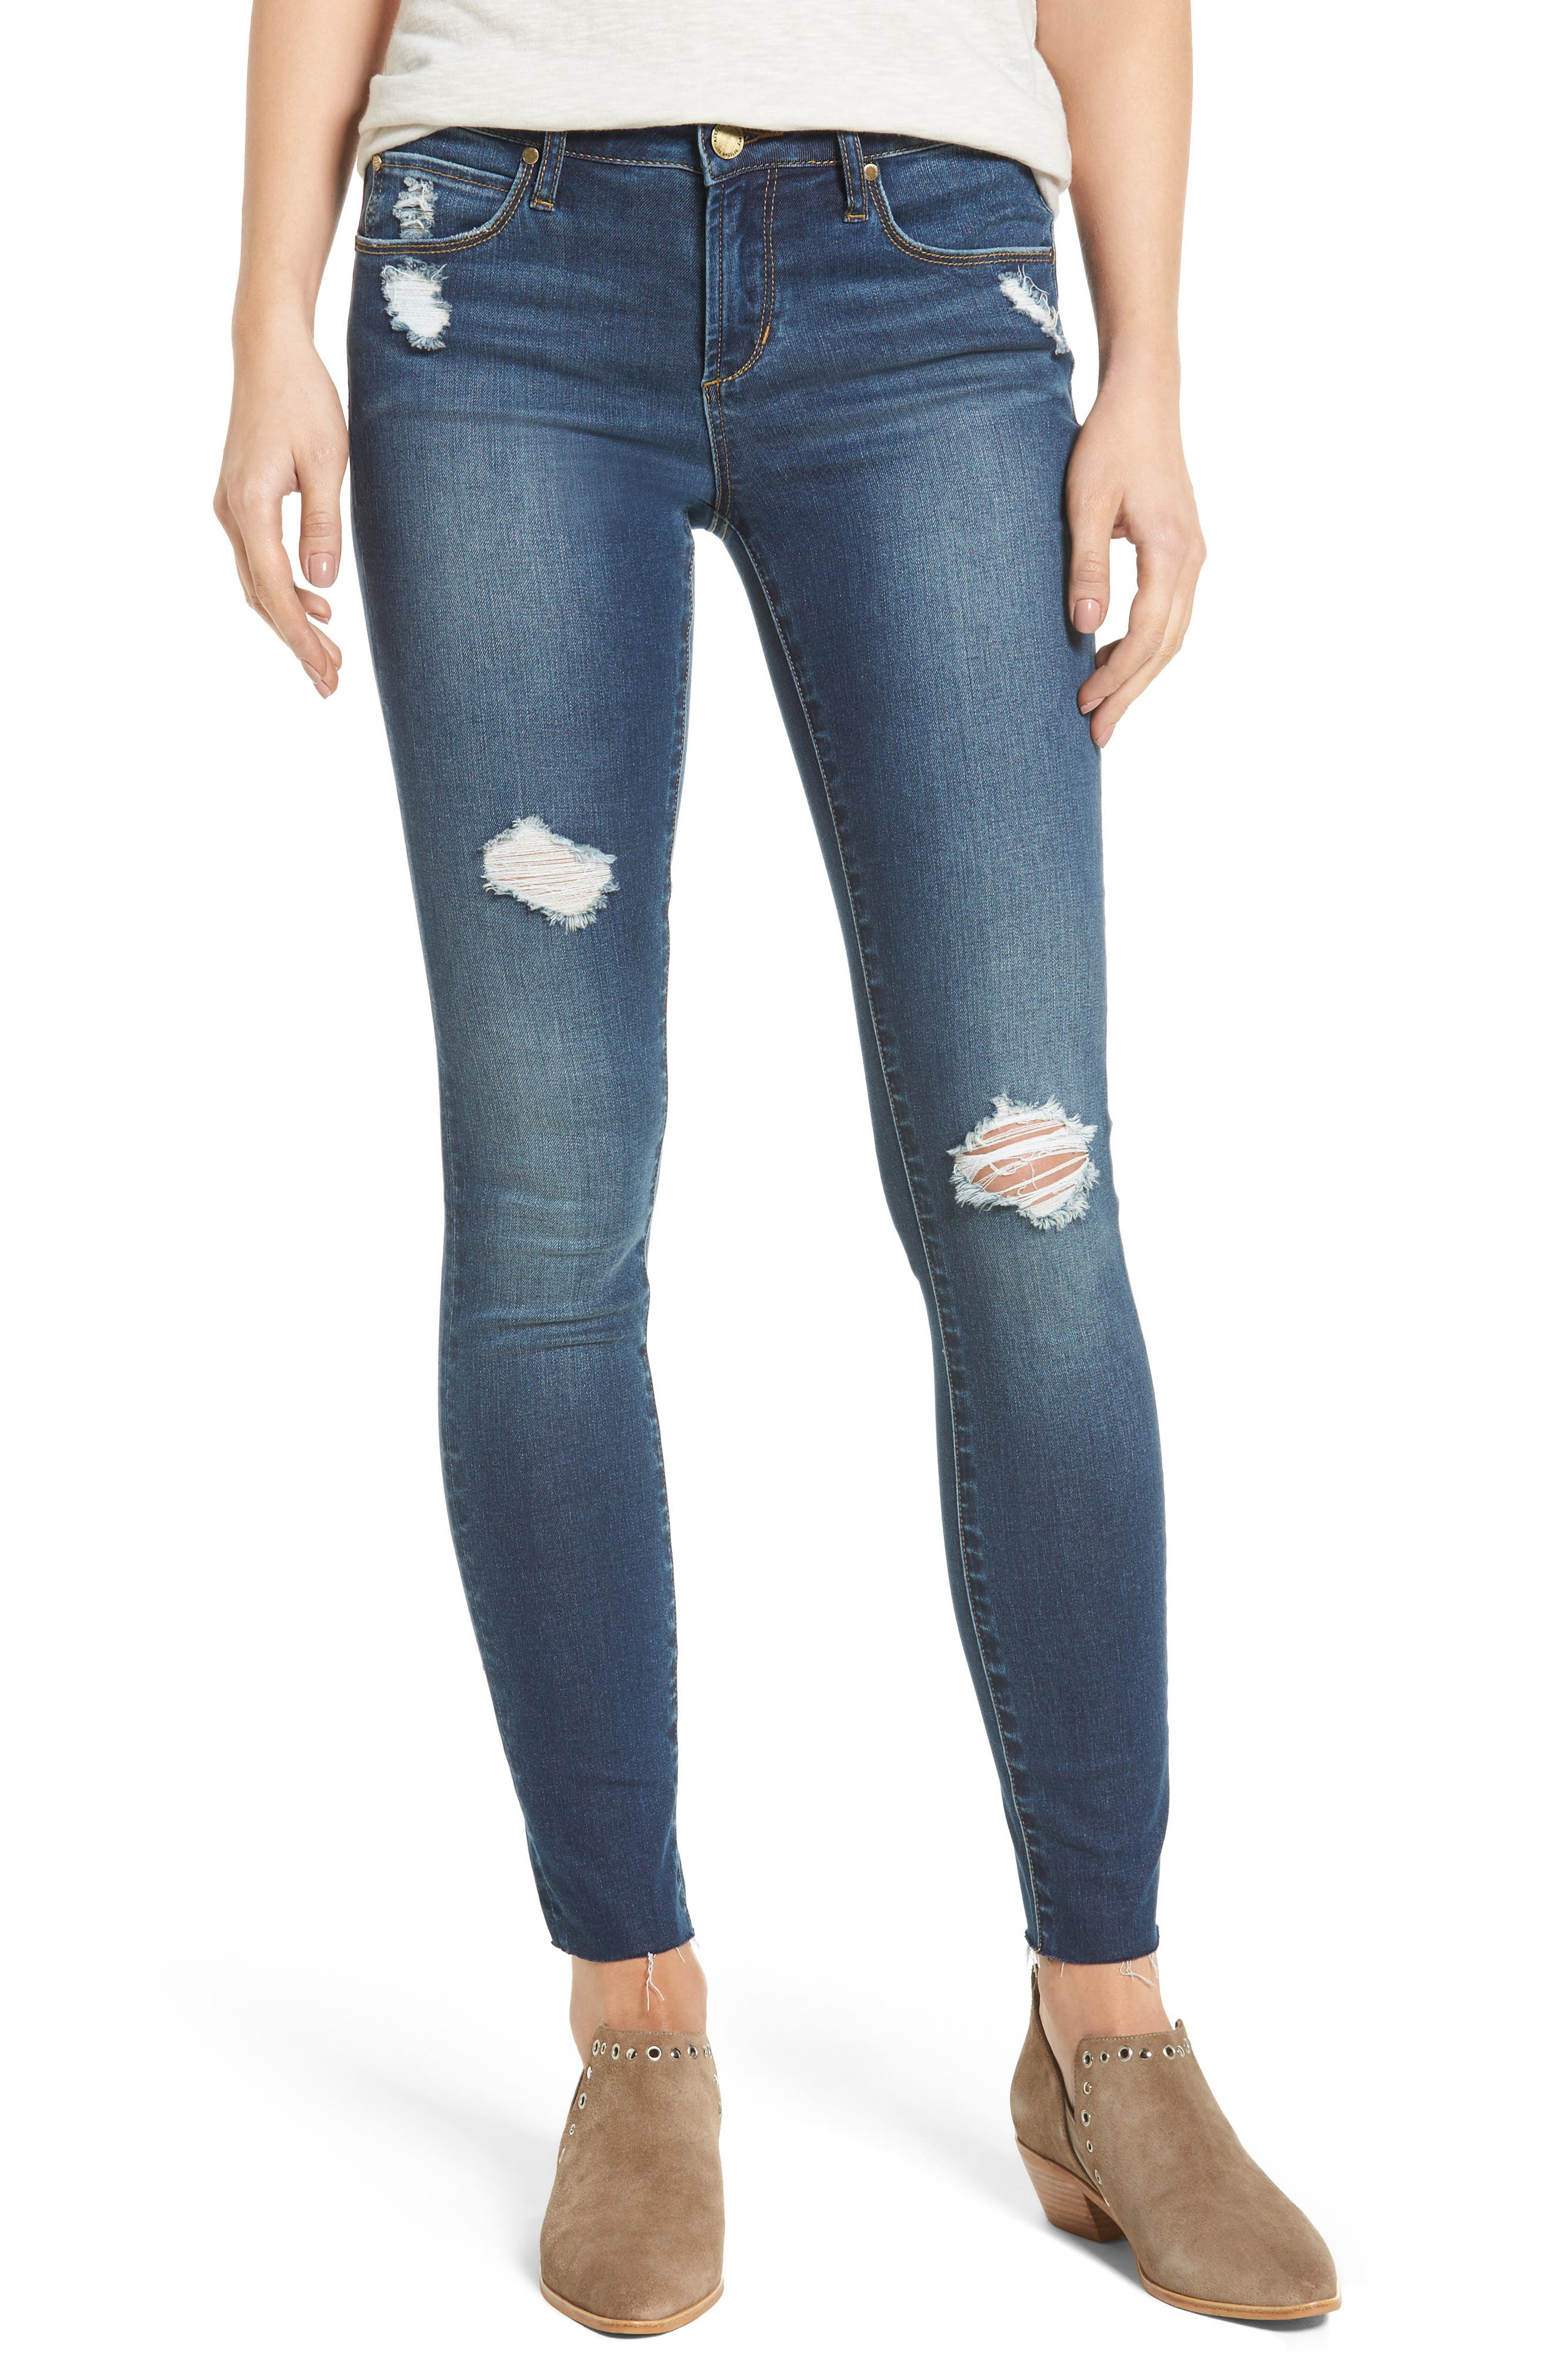 Alternate Image 1 Selected - Articles of Society Sarah Skinny Jeans (Vintage)